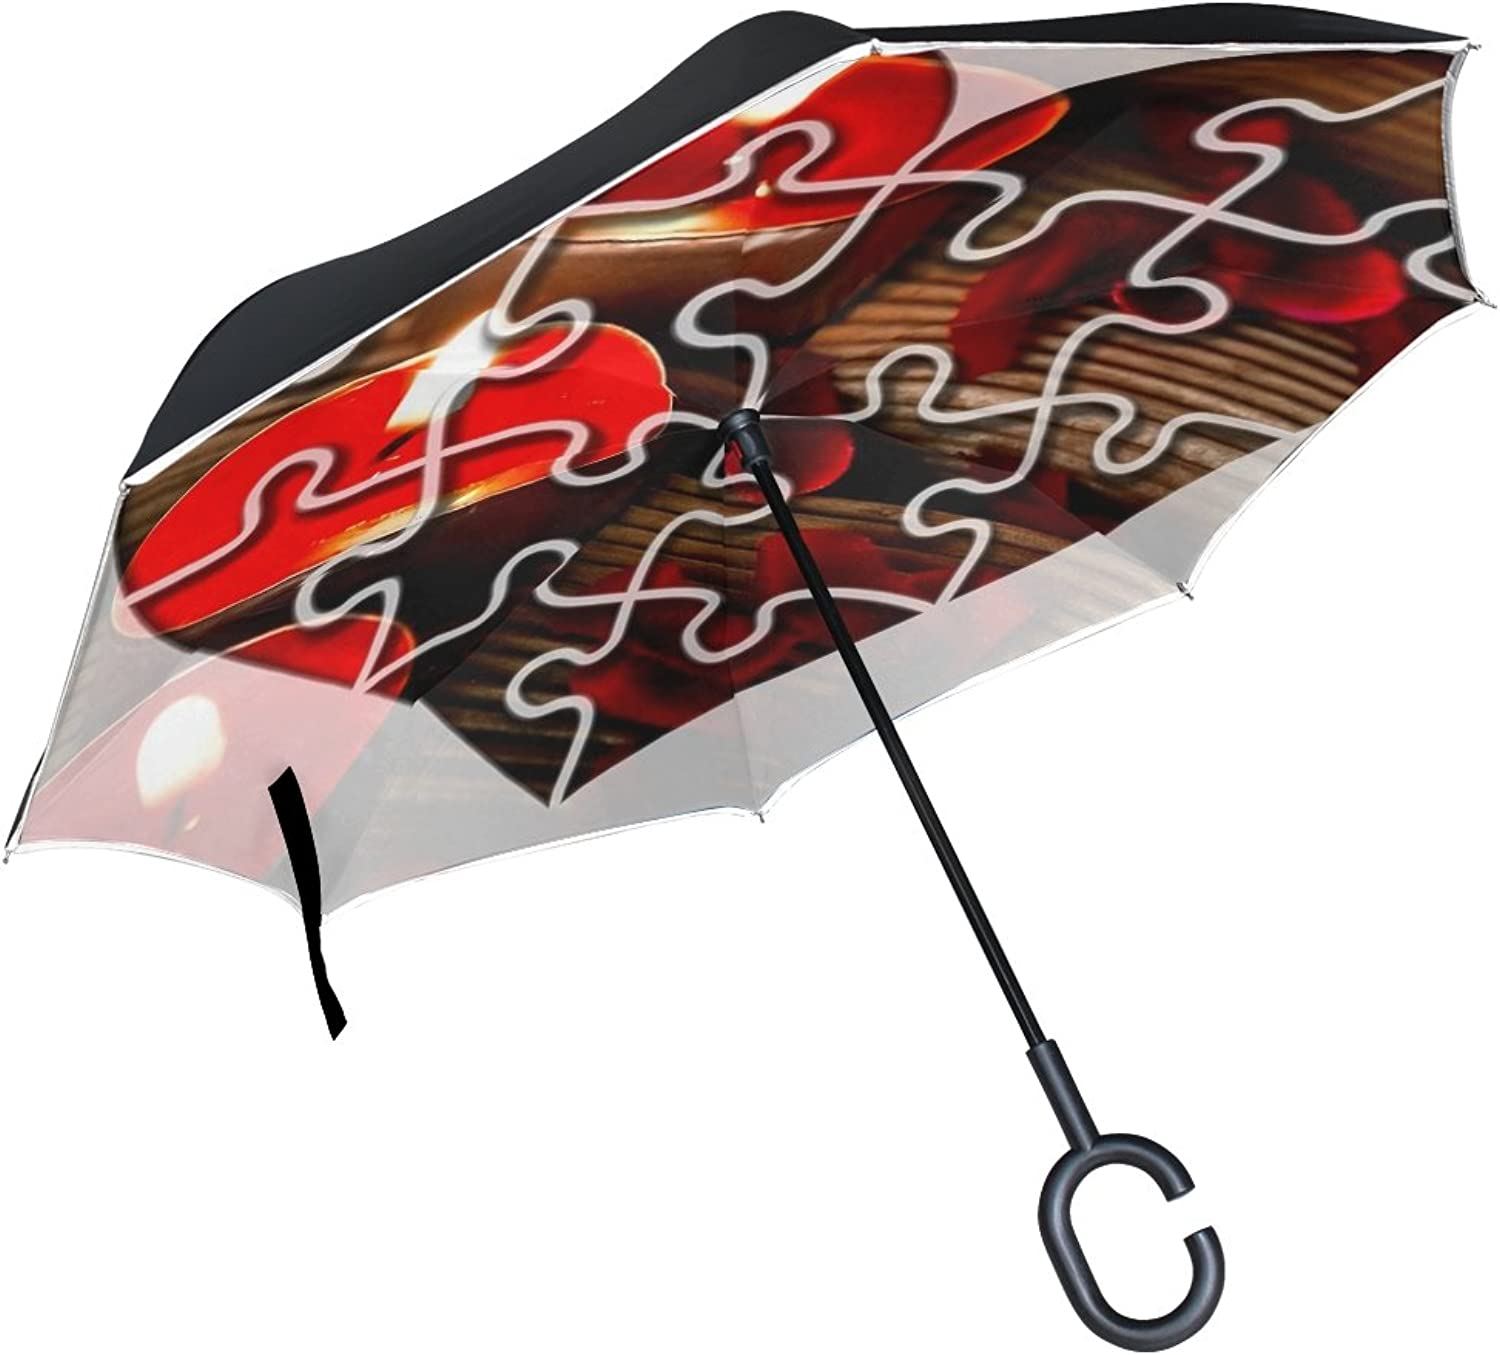 Double Layer Ingreened Heart Puzzle Candles Emotion Joining Together Umbrellas Reverse Folding Umbrella Windproof Uv Predection Big Straight Umbrella for Car Rain Outdoor with CShaped Handle